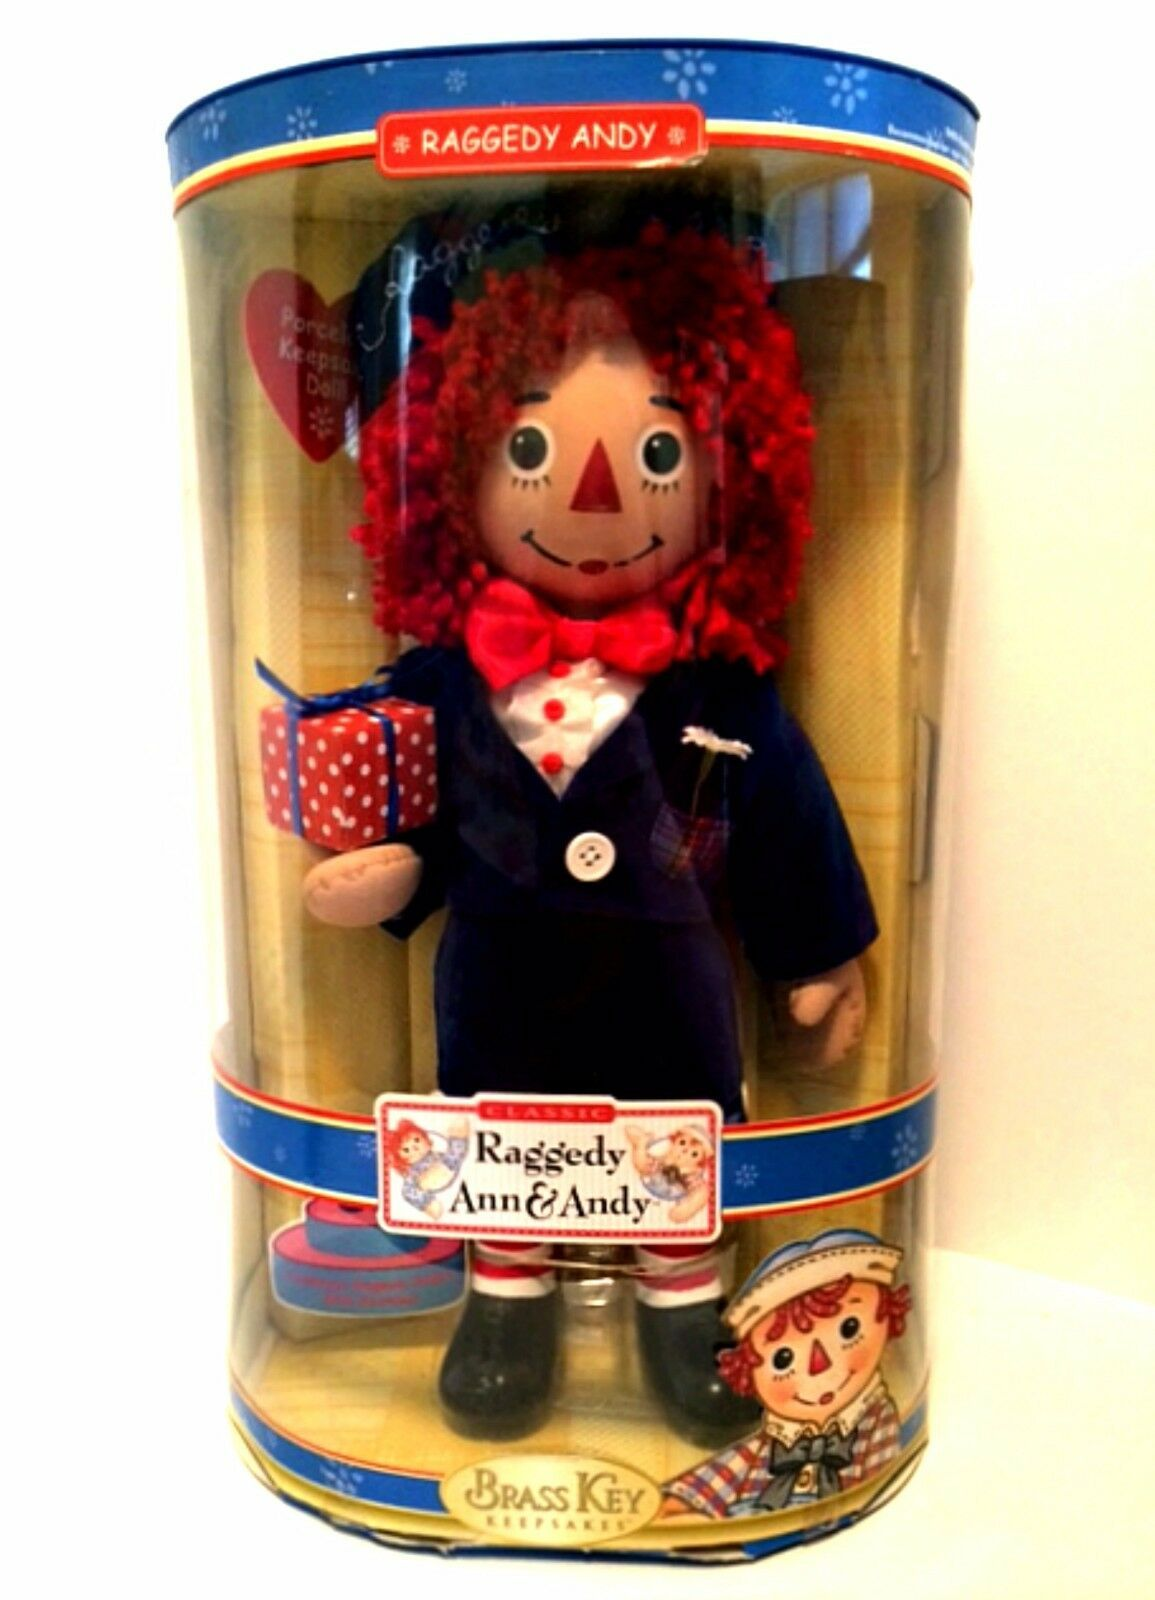 Primary image for Raggedy Andy Porcelain Doll 85th Anniversary Brass Key Keepsakes 14 inches Tall